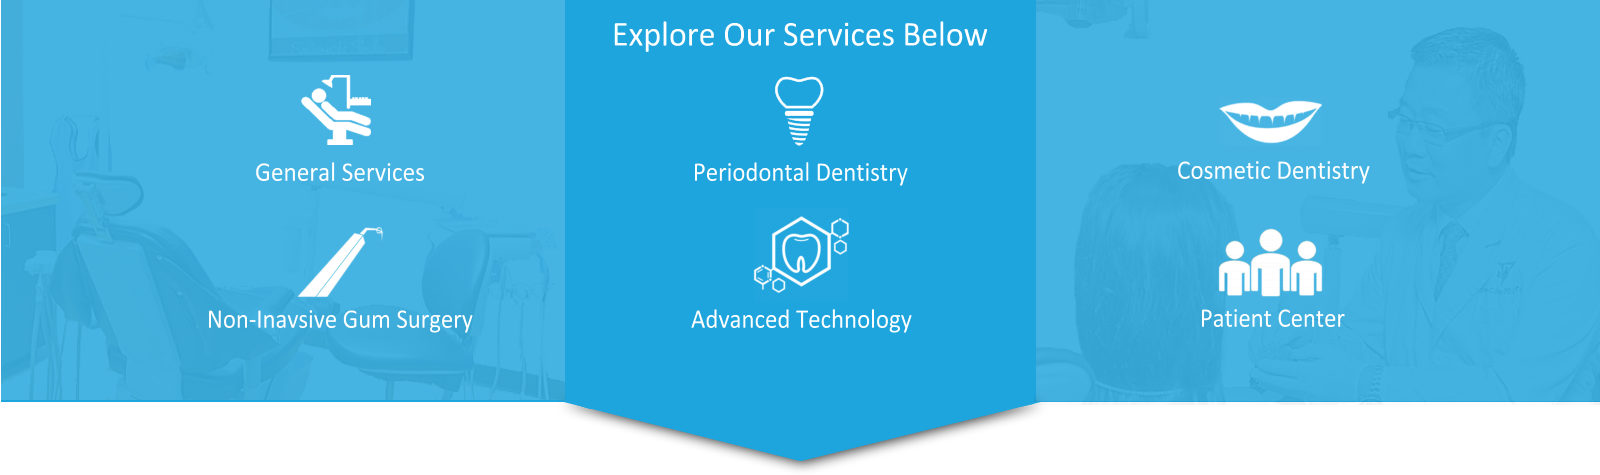 SCDentalGroup.com Green Header Background | SC Dental Group